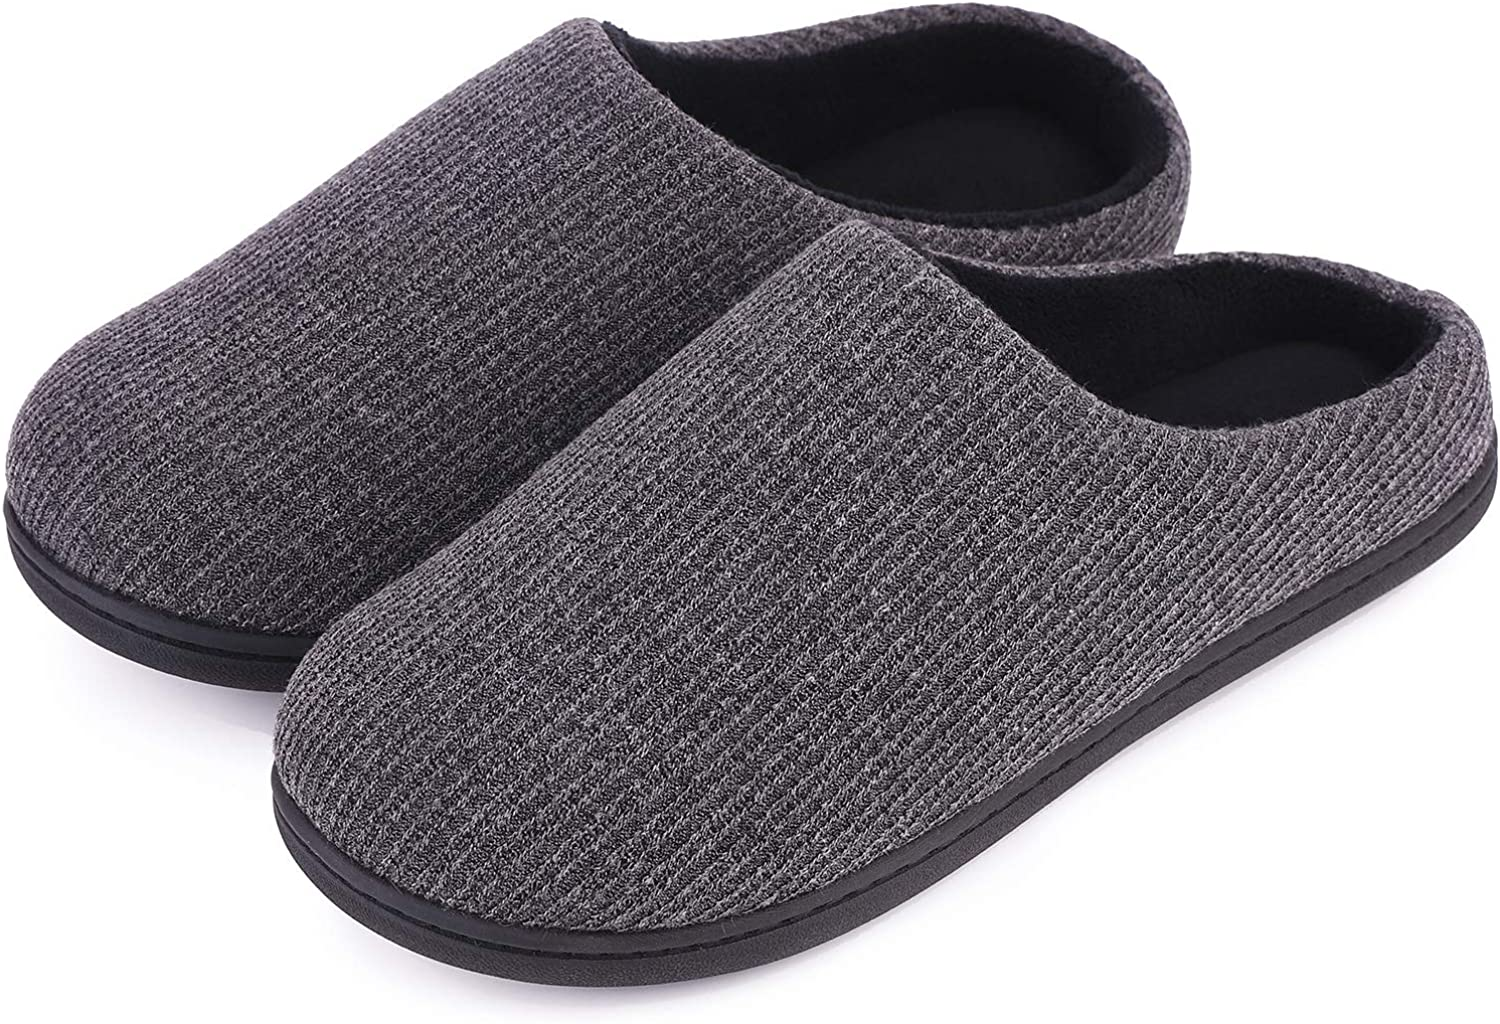 Women's Comfort Memory Foam Cable Knit Slippers Terry Cloth House Slippers w Non-Slip Sole